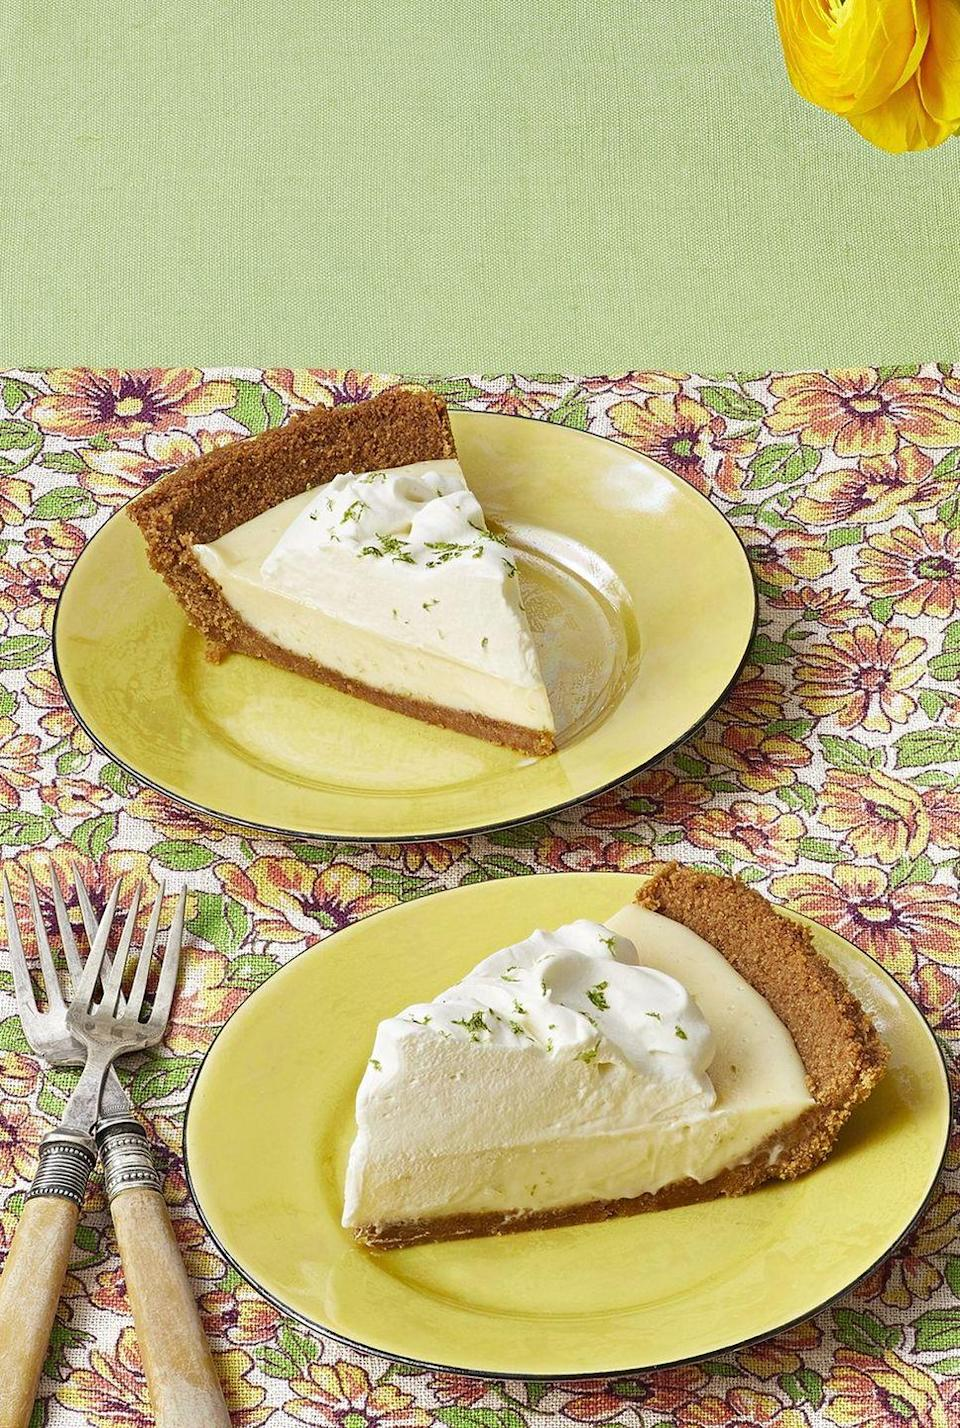 "<p>Celebrate the start of warm weather with your favorite citrus dessert. A Key lime pie will always impress!</p><p><strong><a href=""https://www.thepioneerwoman.com/food-cooking/recipes/a32972780/classic-key-lime-pie-recipe/"" rel=""nofollow noopener"" target=""_blank"" data-ylk=""slk:Get Ree's recipe."" class=""link rapid-noclick-resp"">Get Ree's recipe.</a></strong></p><p><strong><a class=""link rapid-noclick-resp"" href=""https://go.redirectingat.com?id=74968X1596630&url=https%3A%2F%2Fwww.walmart.com%2Fsearch%2F%3Fquery%3Dpioneer%2Bwoman%2Bpie%2Bplate&sref=https%3A%2F%2Fwww.thepioneerwoman.com%2Ffood-cooking%2Fmeals-menus%2Fg35408493%2Feaster-desserts%2F"" rel=""nofollow noopener"" target=""_blank"" data-ylk=""slk:SHOP PIE PLATES"">SHOP PIE PLATES</a><br></strong></p>"